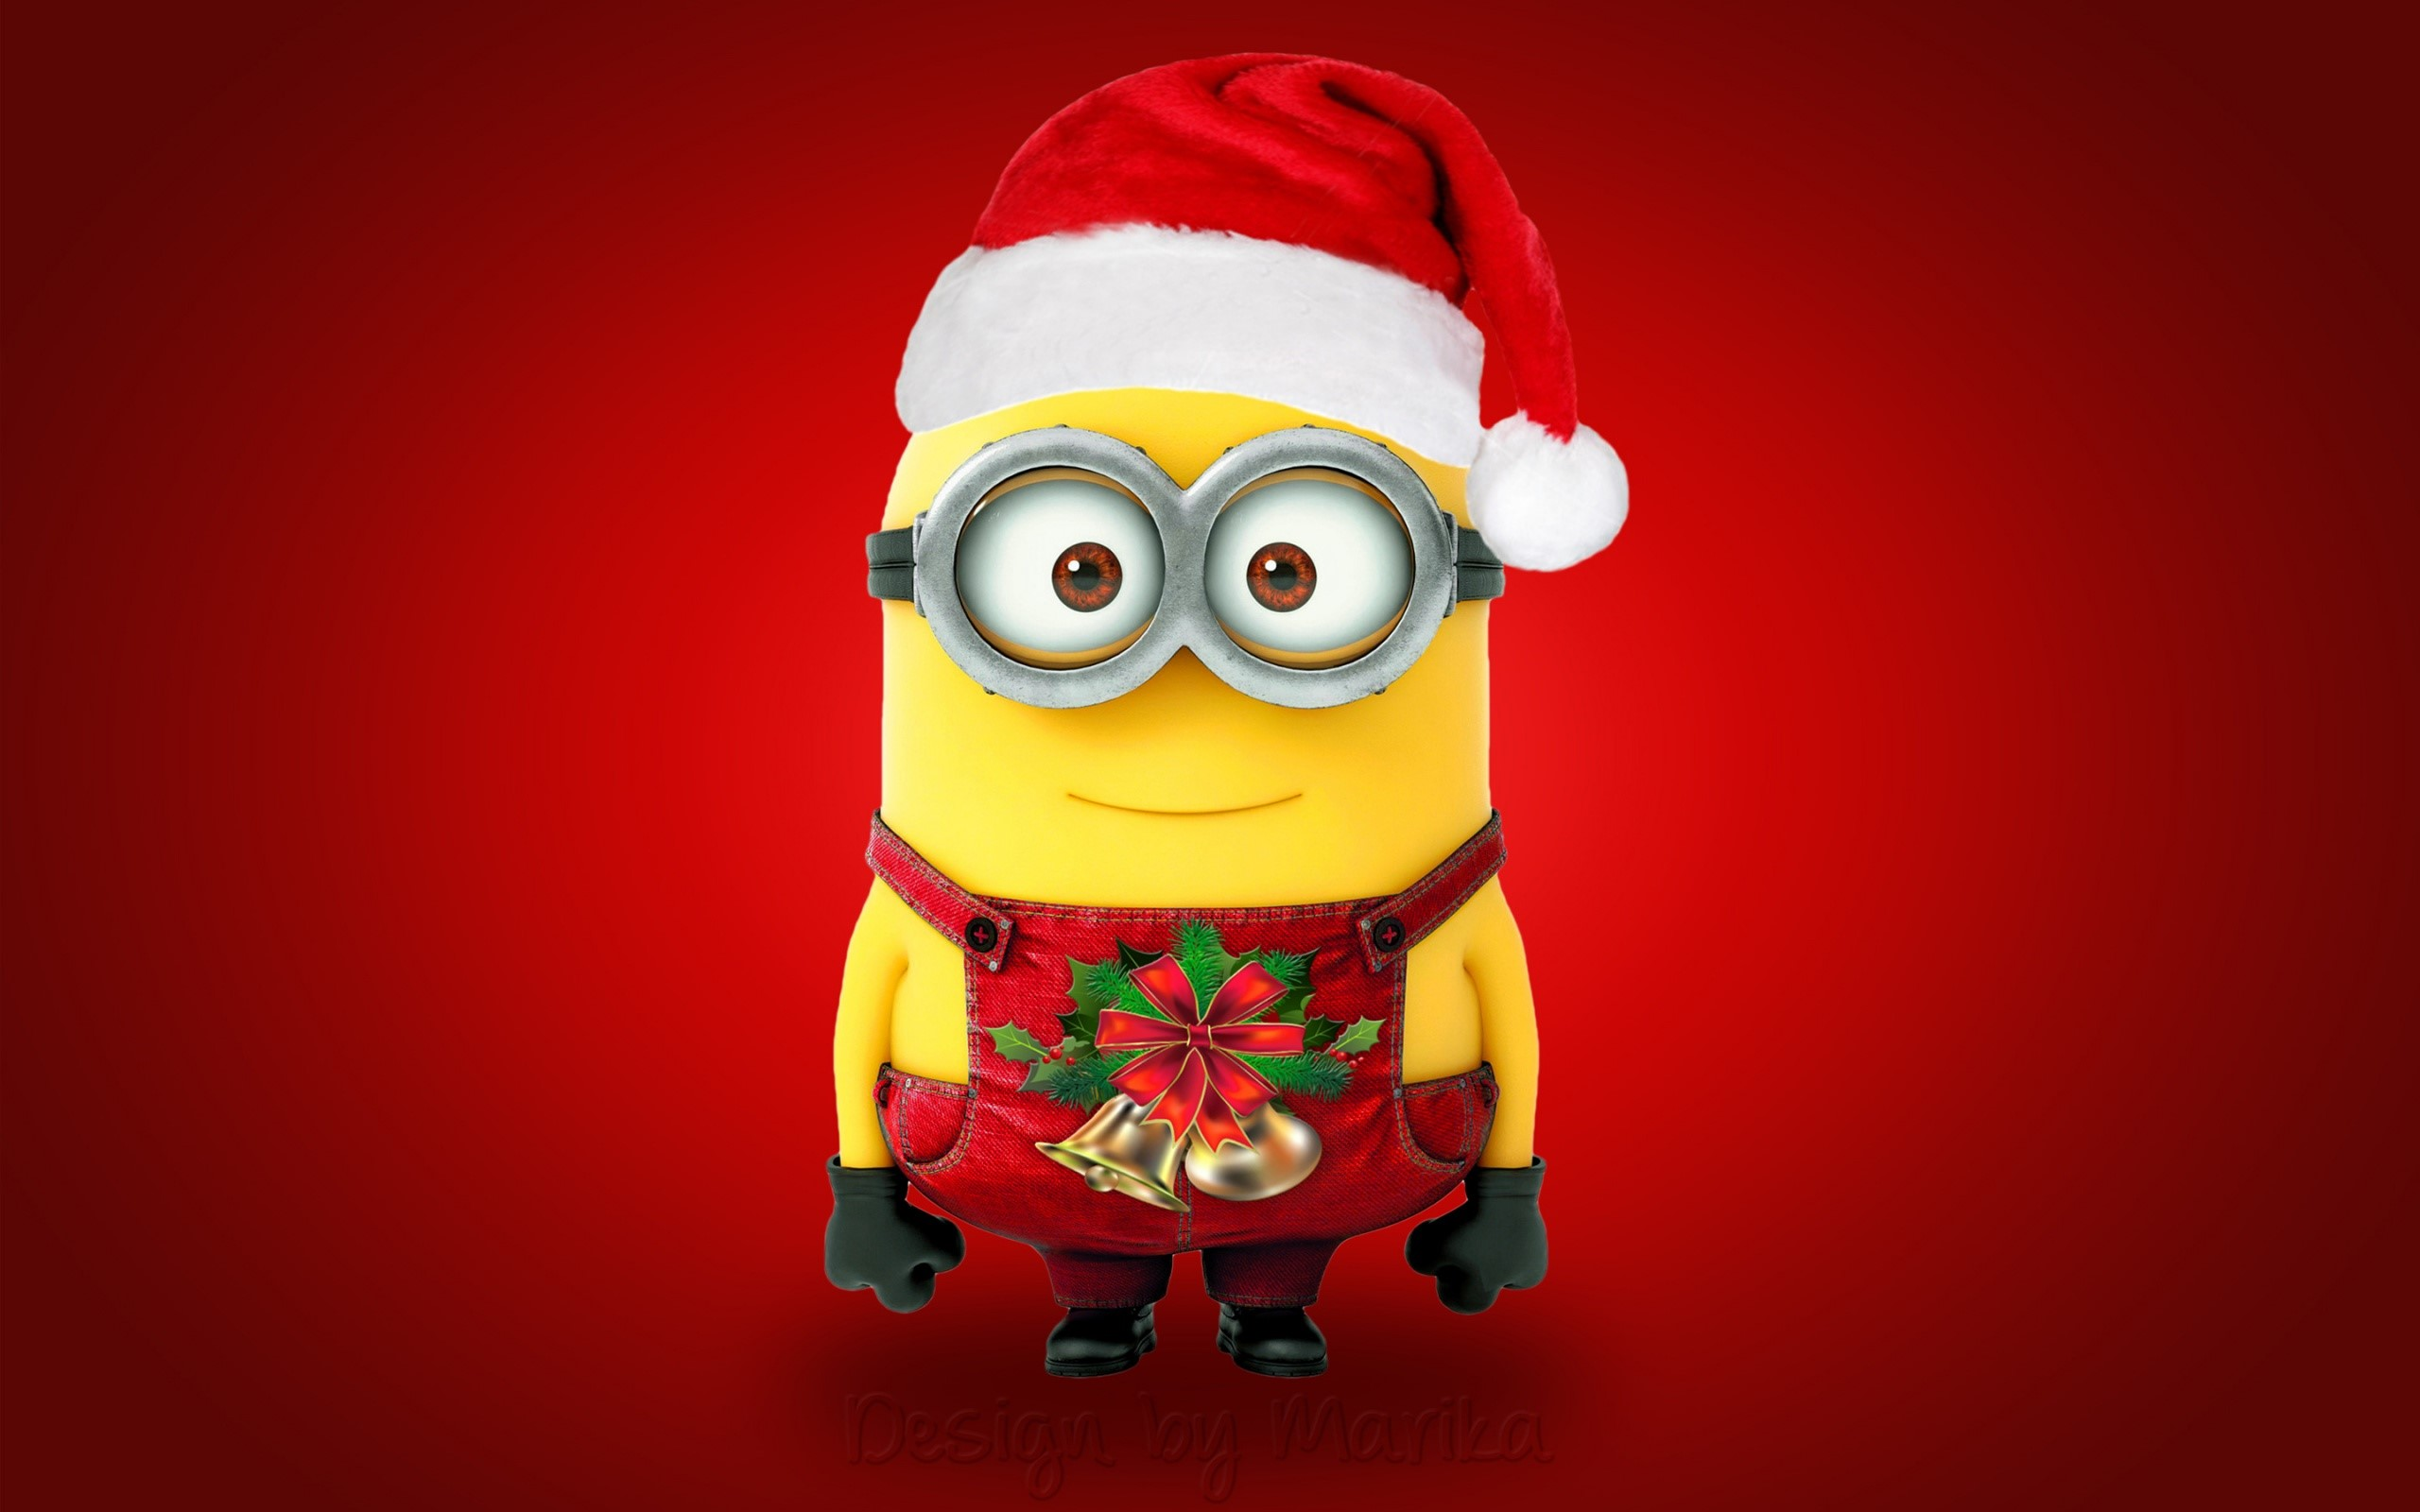 Wallpaper Minion as Santa